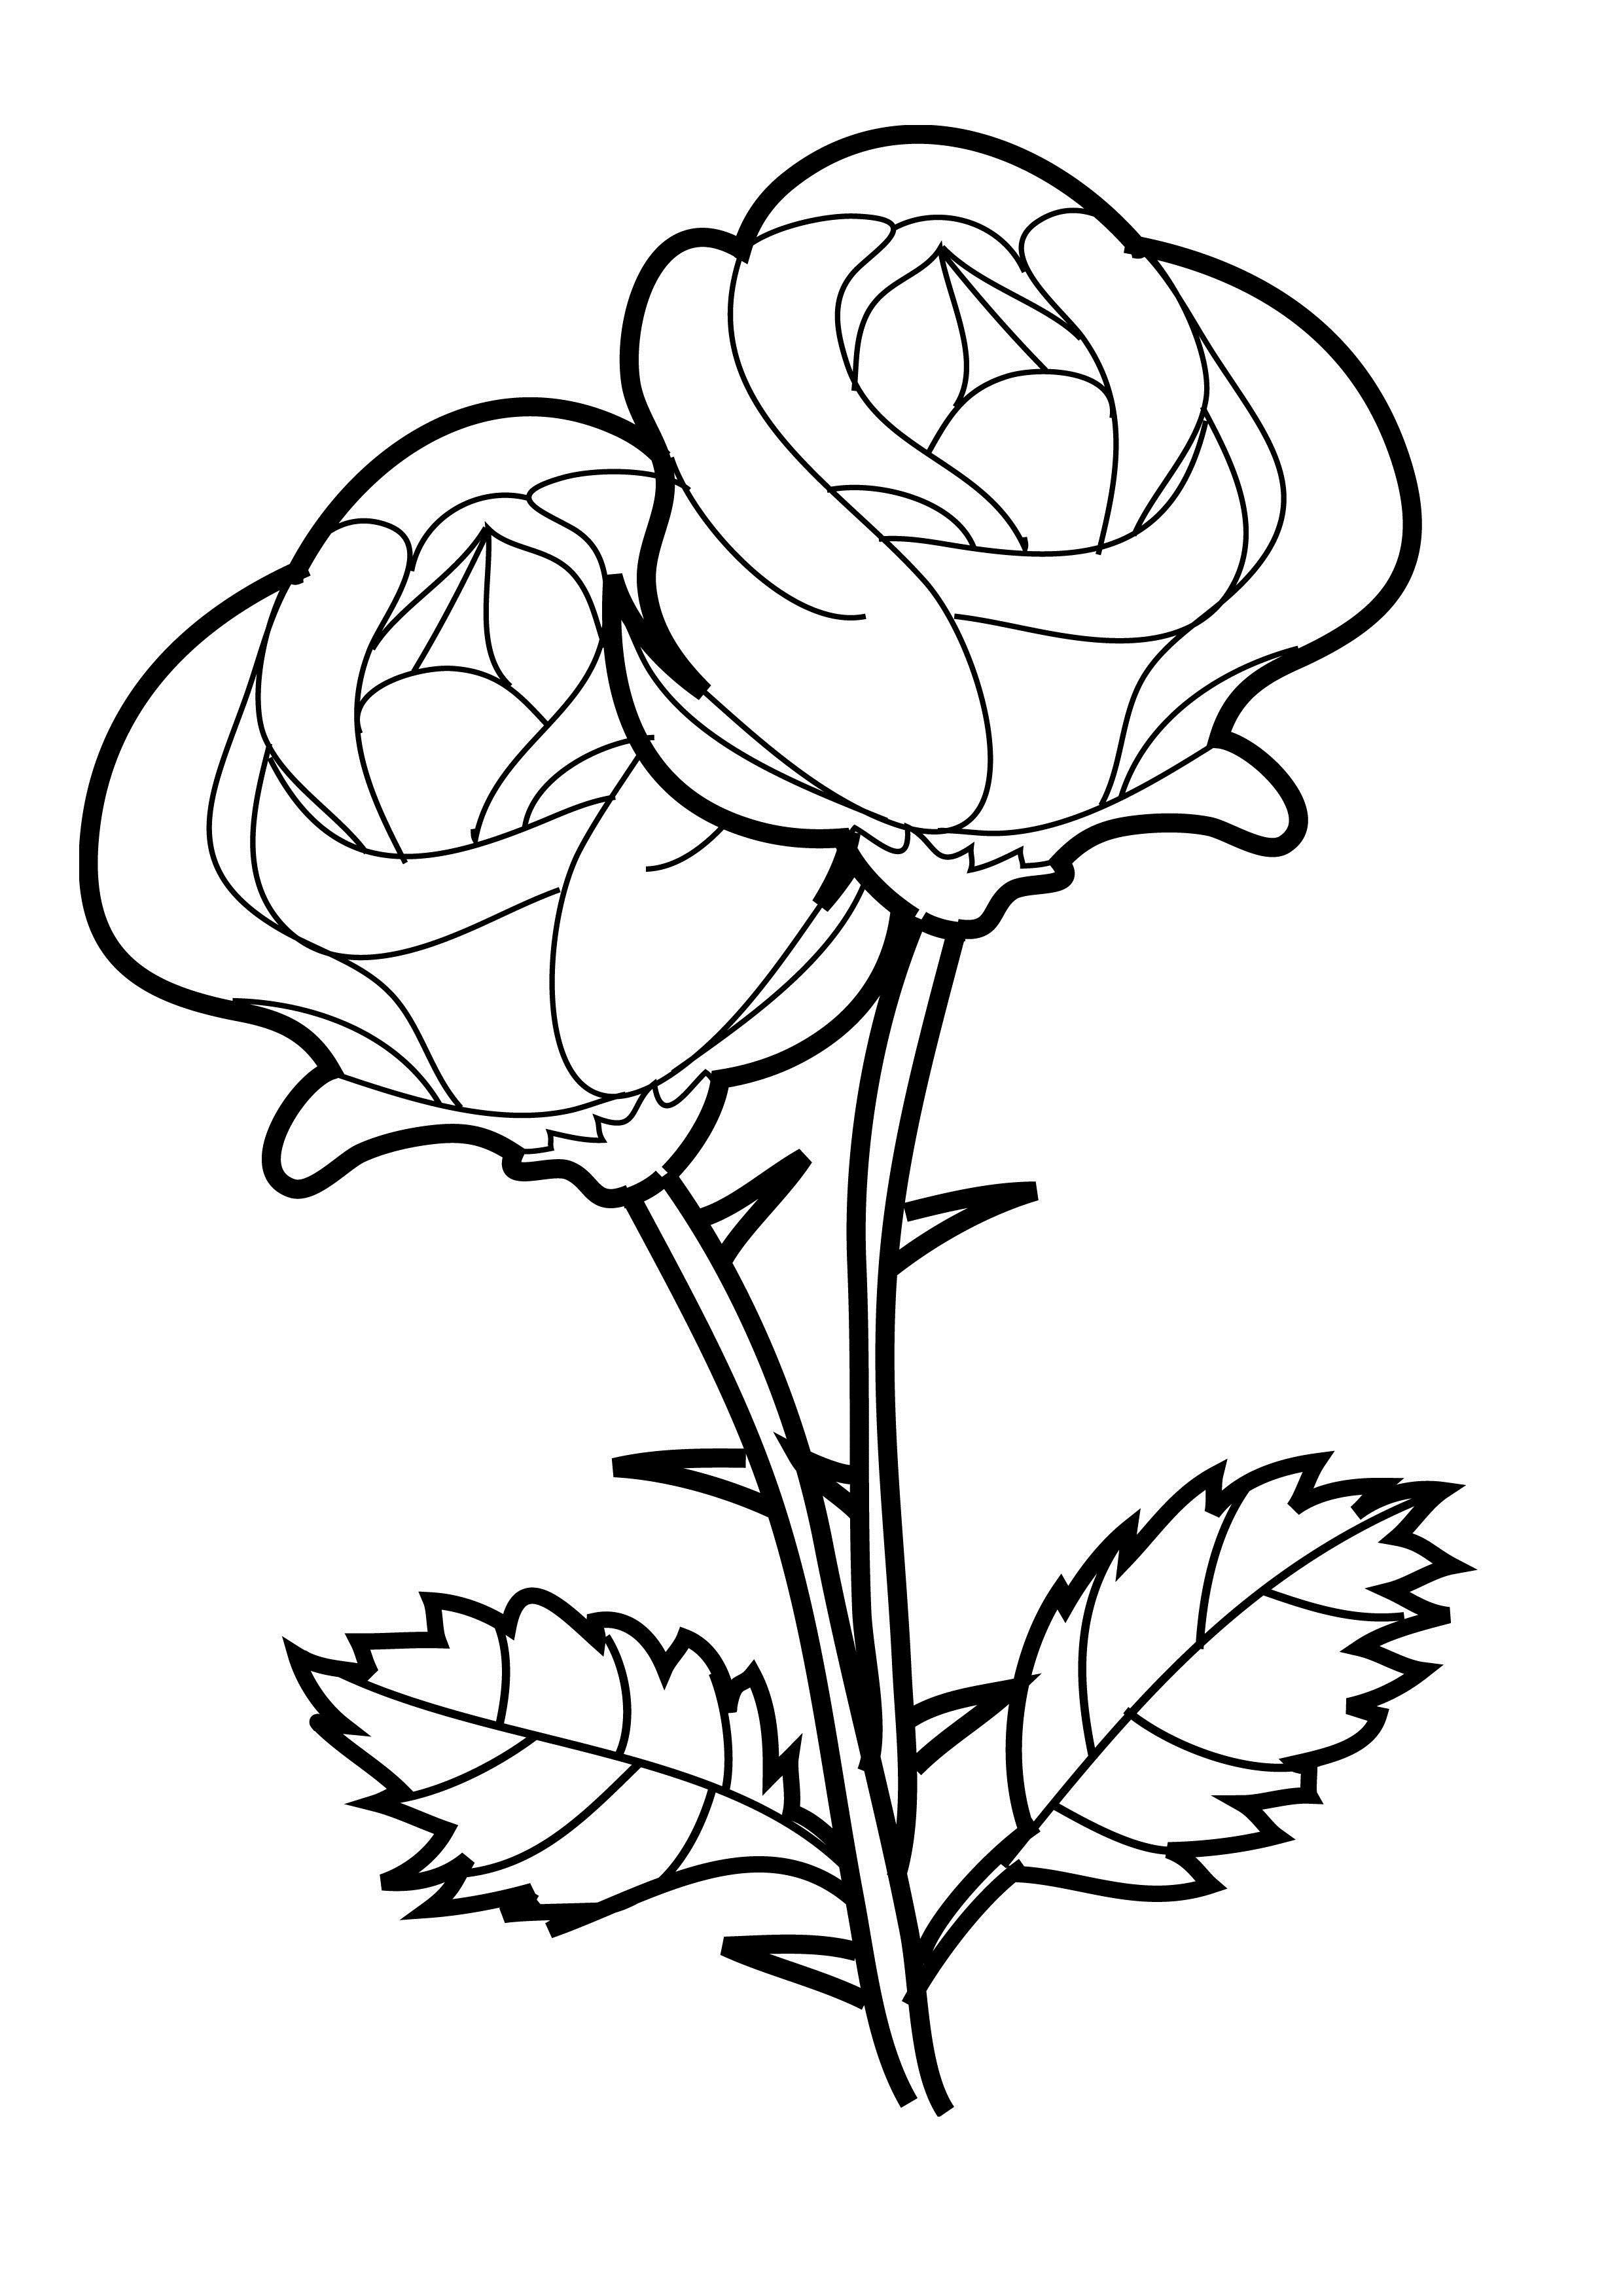 Flower Coloring Pages Rose coloring pages, Flower